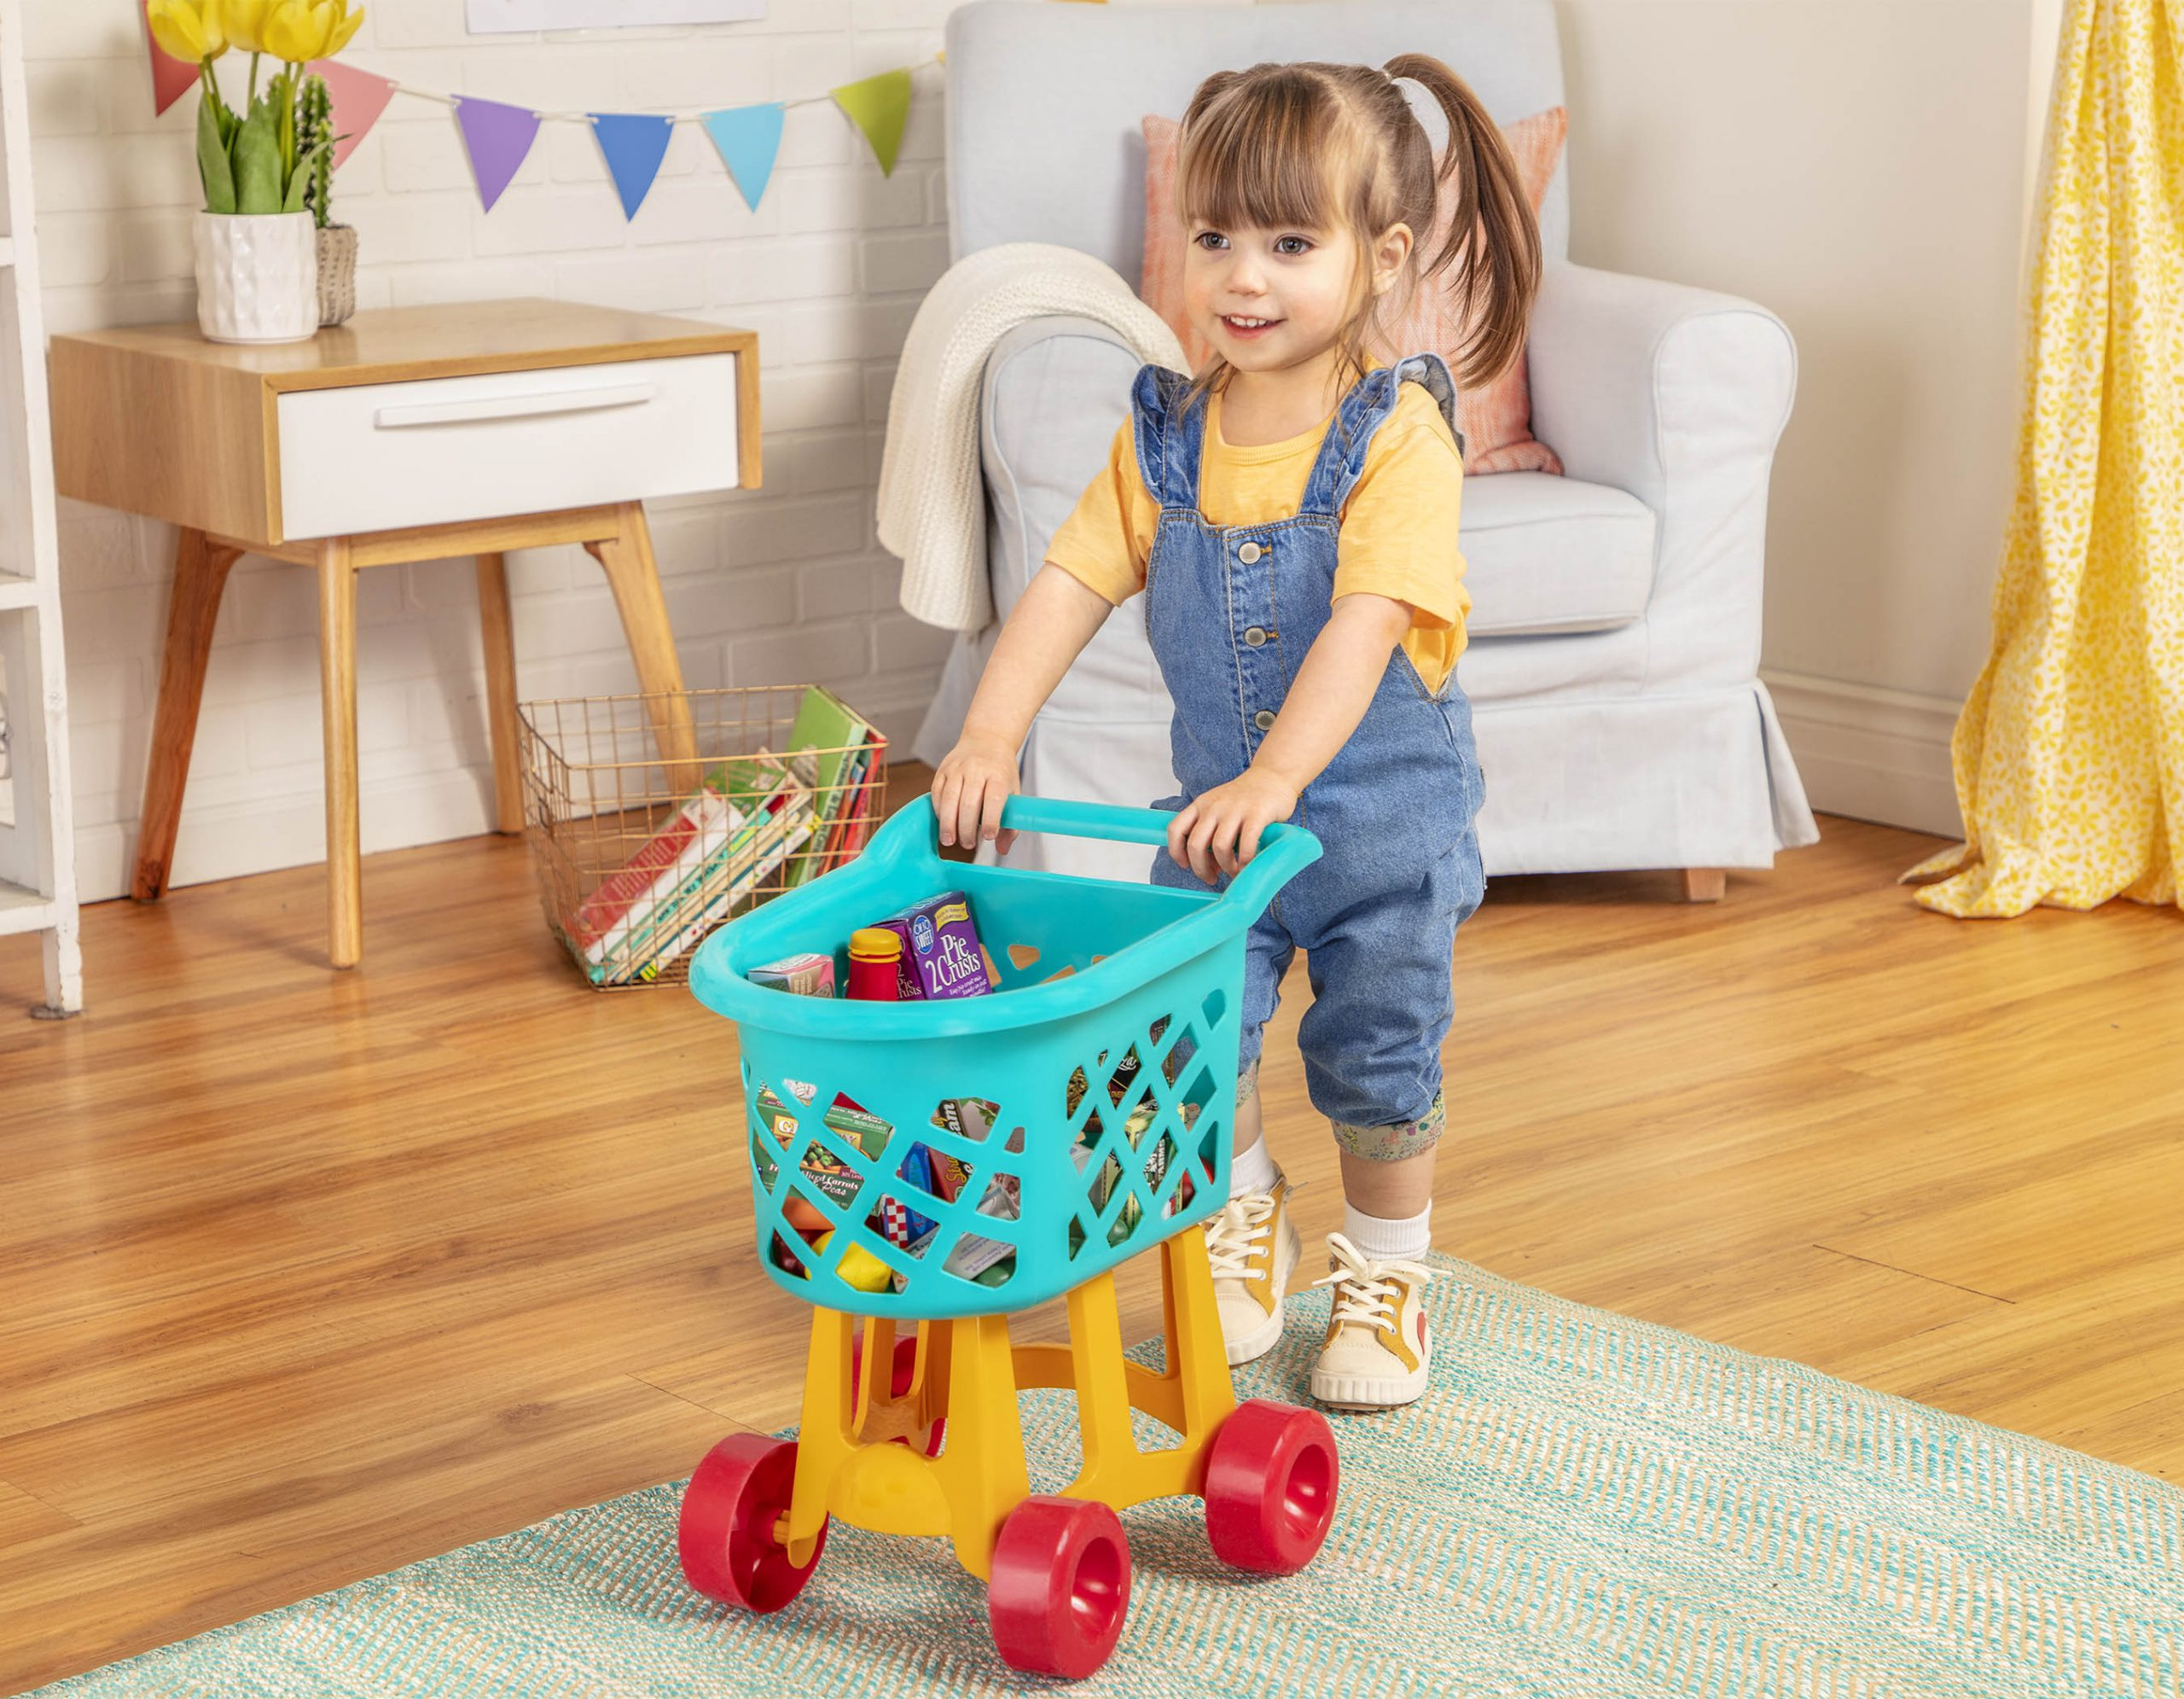 Smiling girl pushing a toy grocery cart with toy food inside.